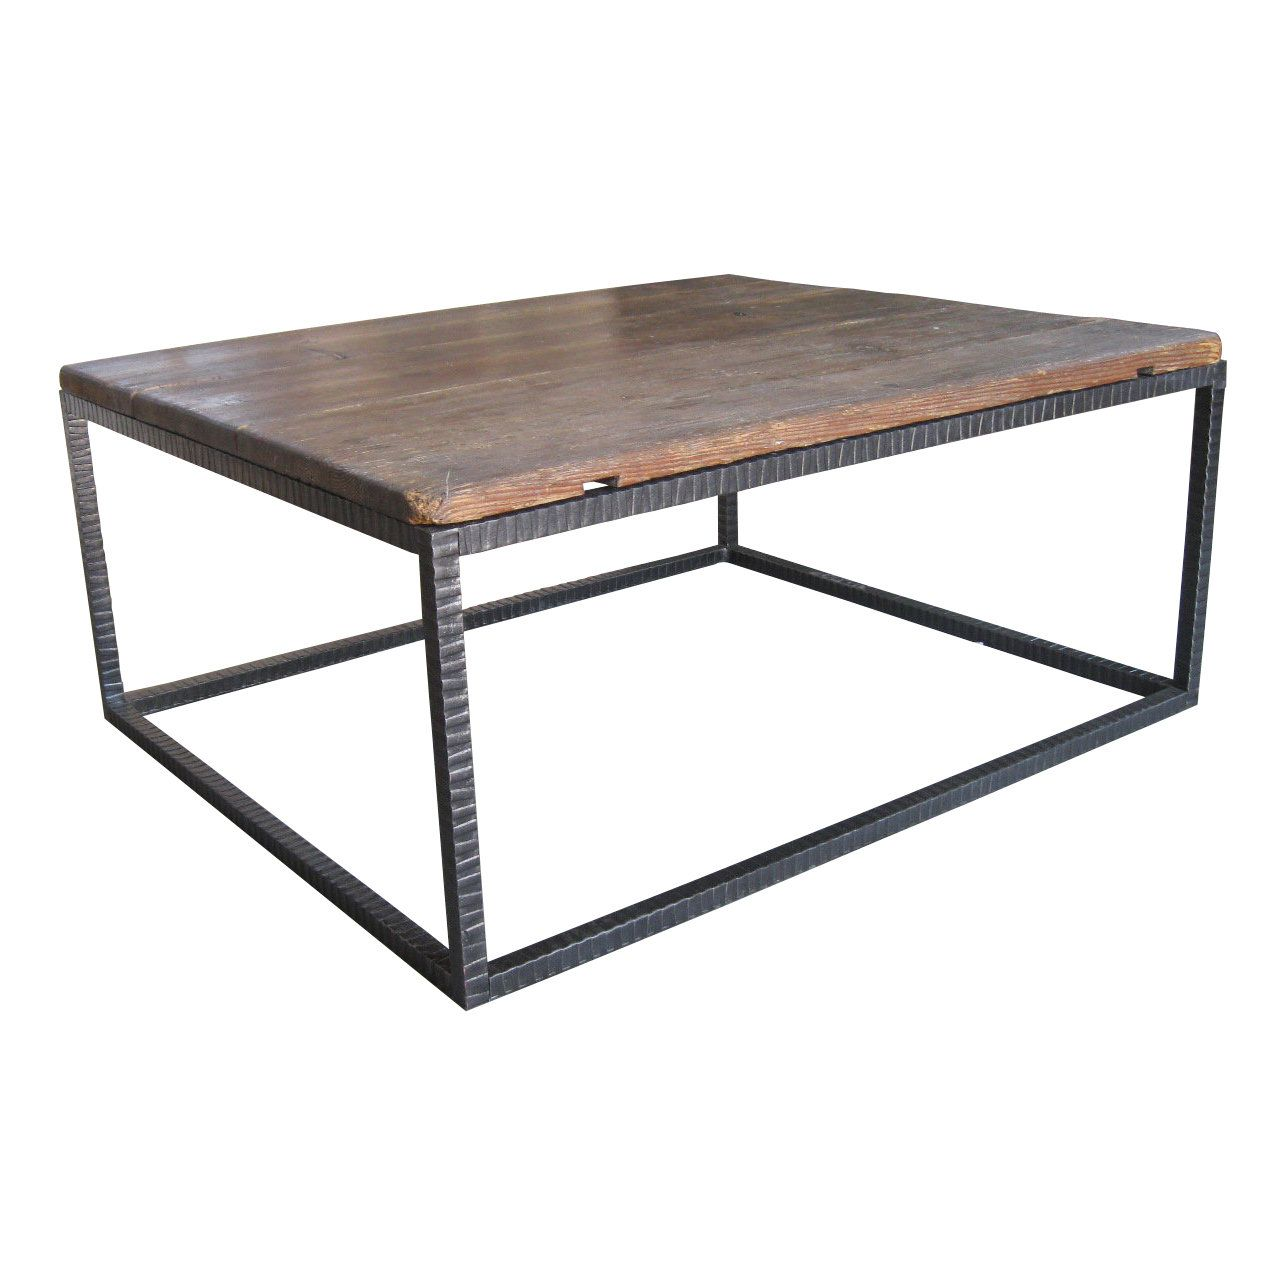 Coffee tables design best wood iron table round and coffee coffee tables design best wood iron table round and geotapseo Image collections